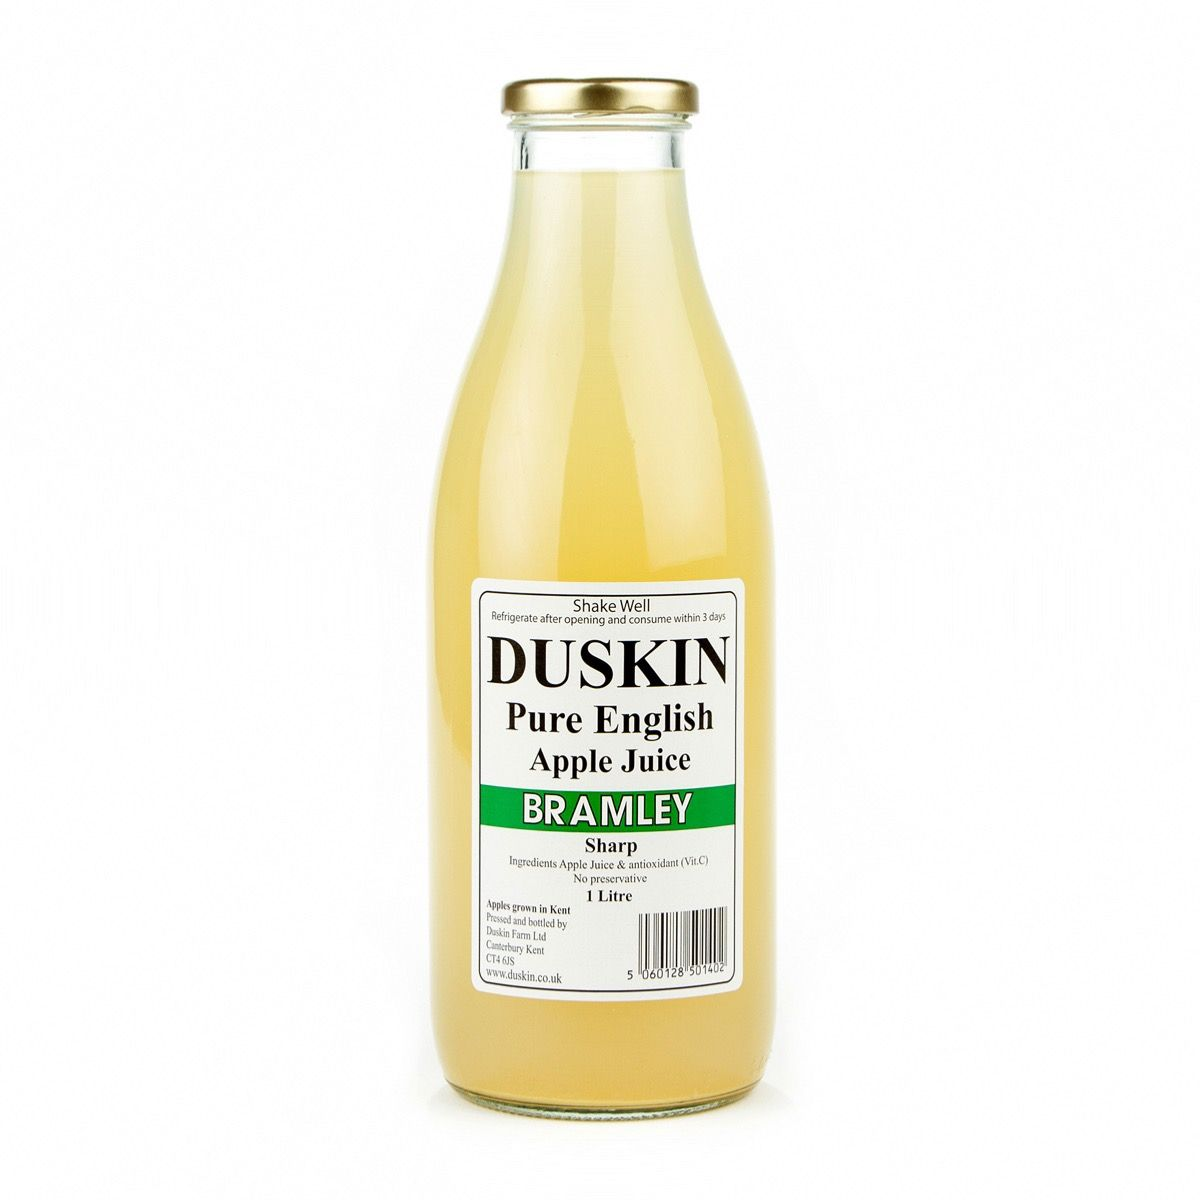 Duskin Bramley Apple Juice